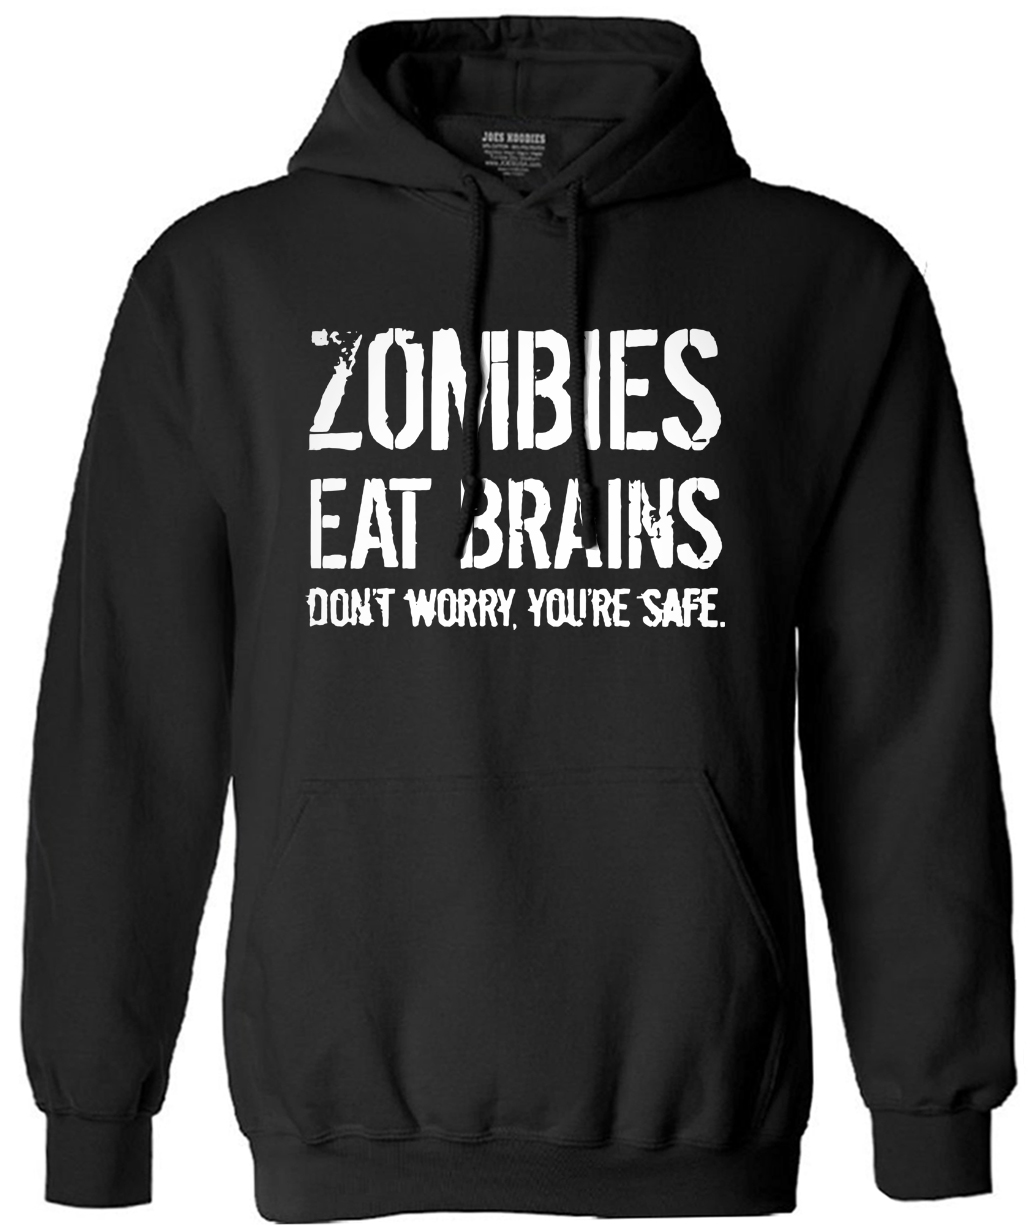 Mens Zombies Eat Brains So Youre Safe sweatshirt men Funny tracksuit male hooded fashion 2017 new autumn winter fleece hoodies